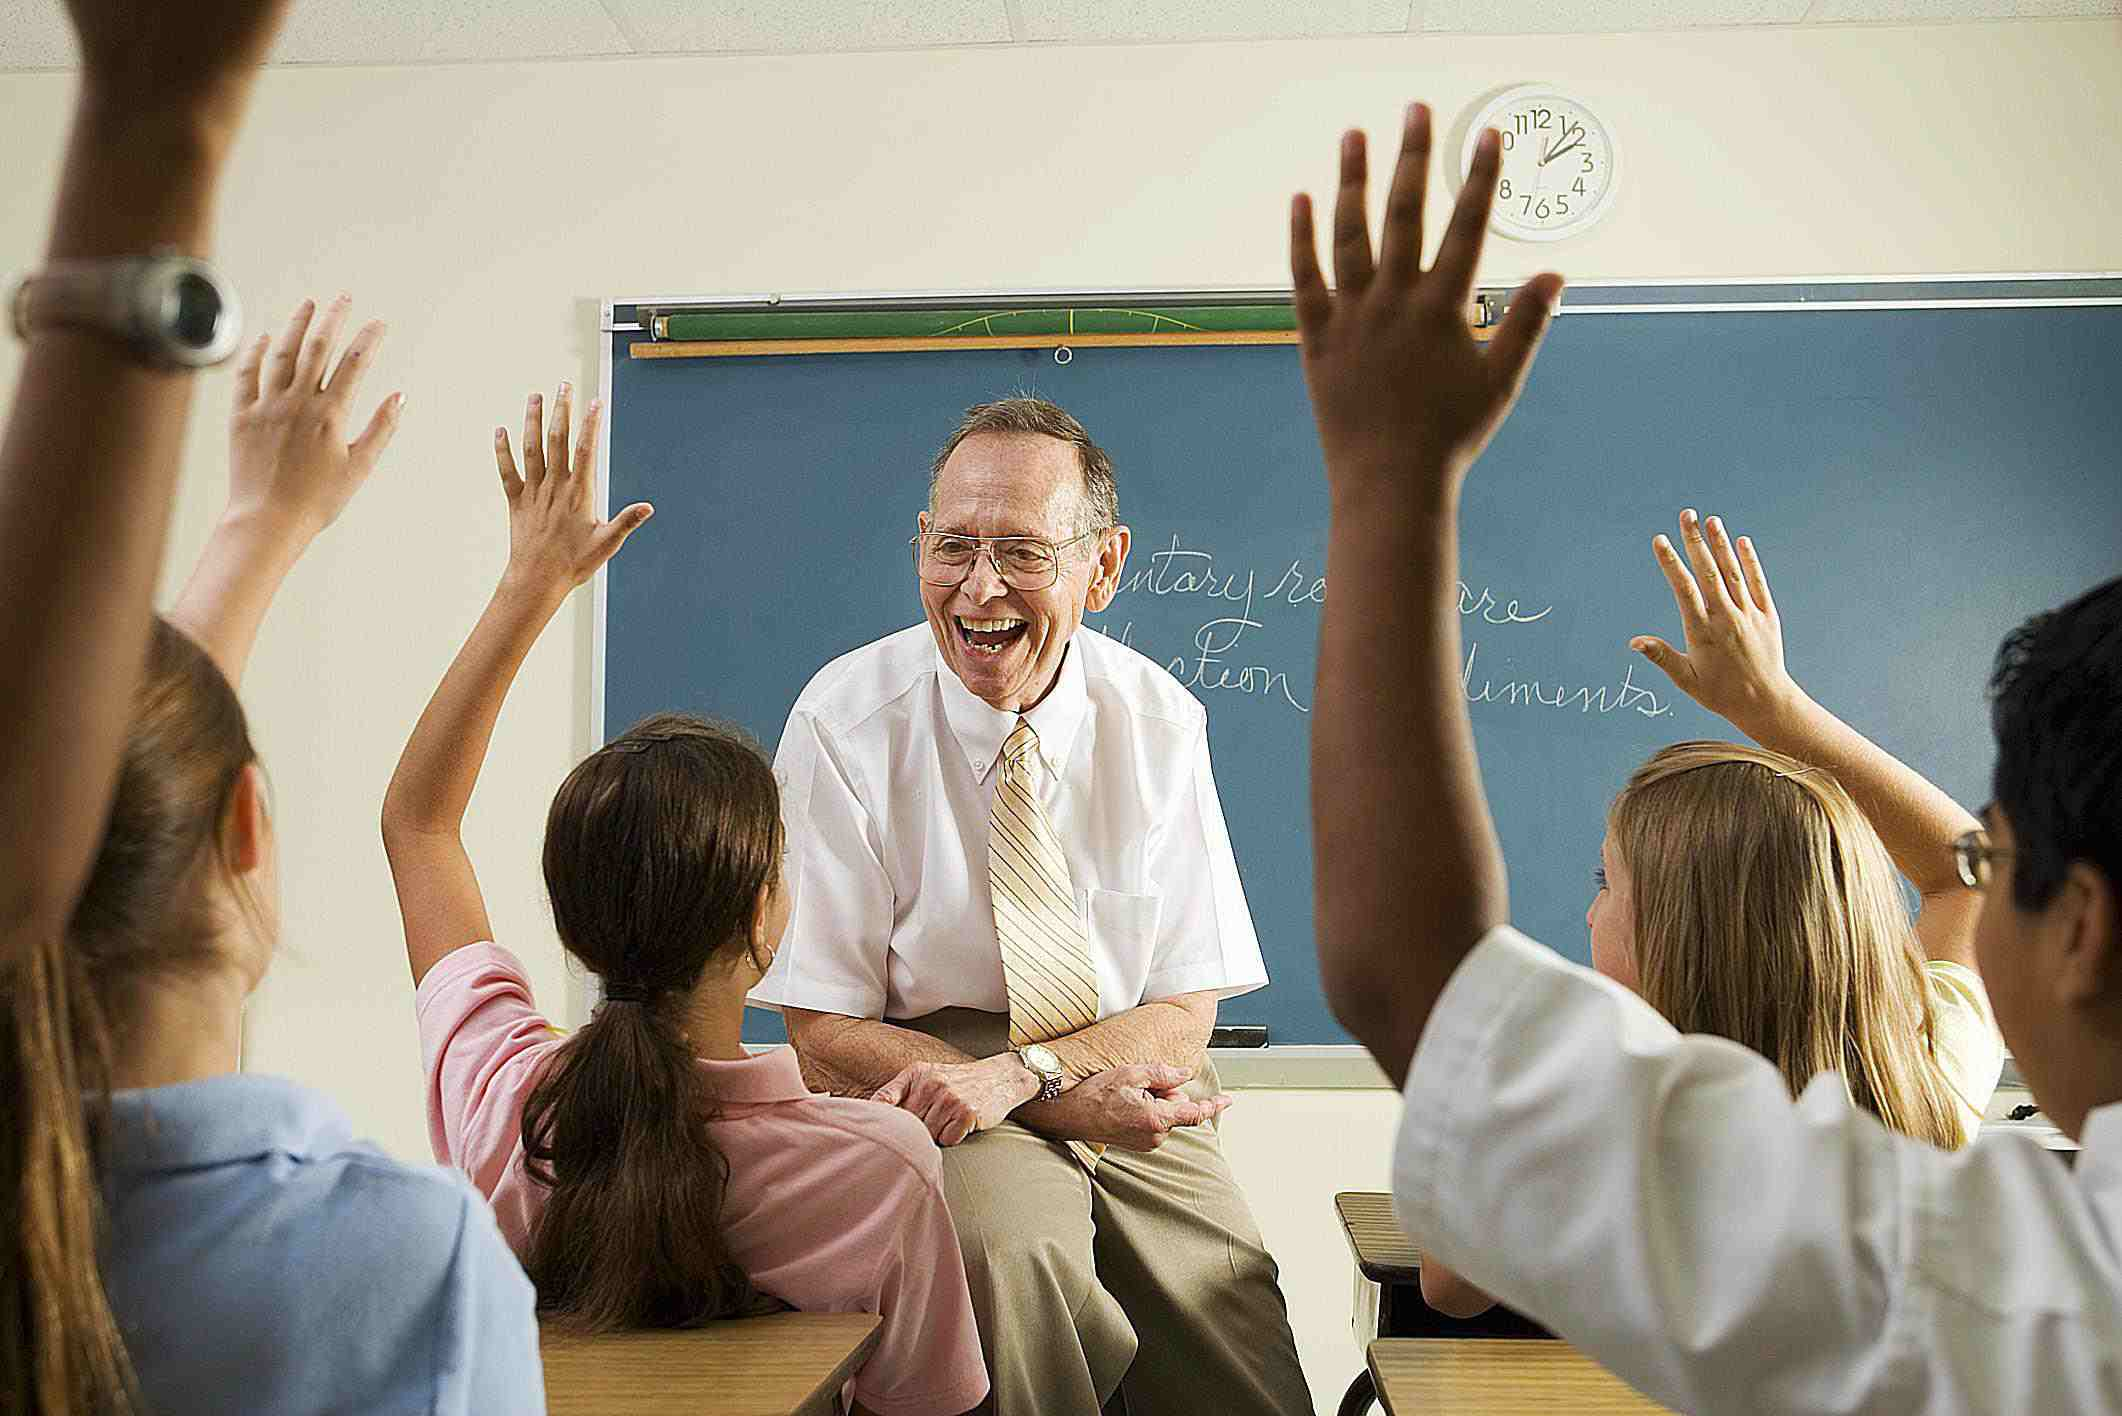 students with raised hands and teacher sitting on desk